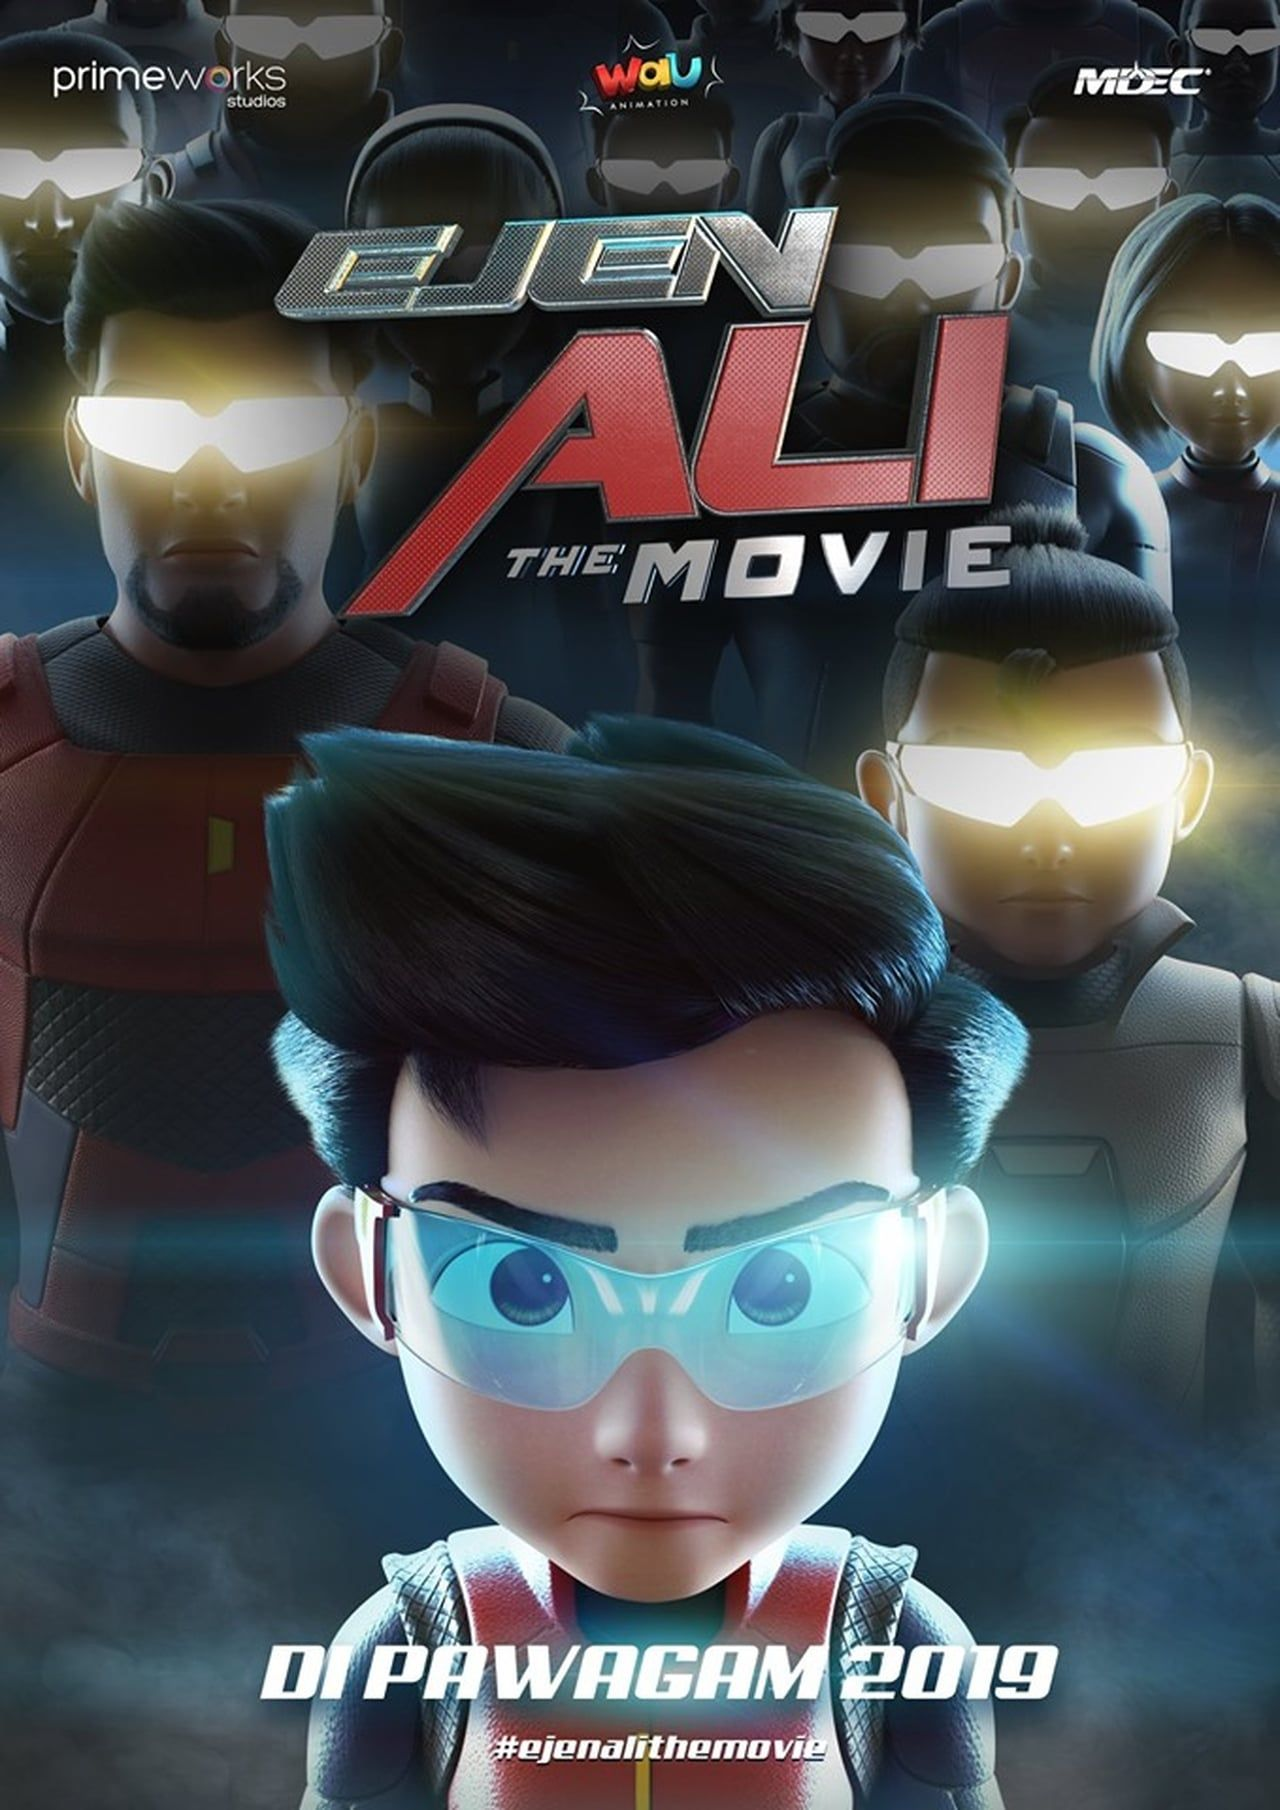 Free Watch Ejen Ali The Movie 2019 Movie Without Downloading At Top Mouflix Us In 2020 Movies 2019 Animated Cartoon Movies Cartoon Movies